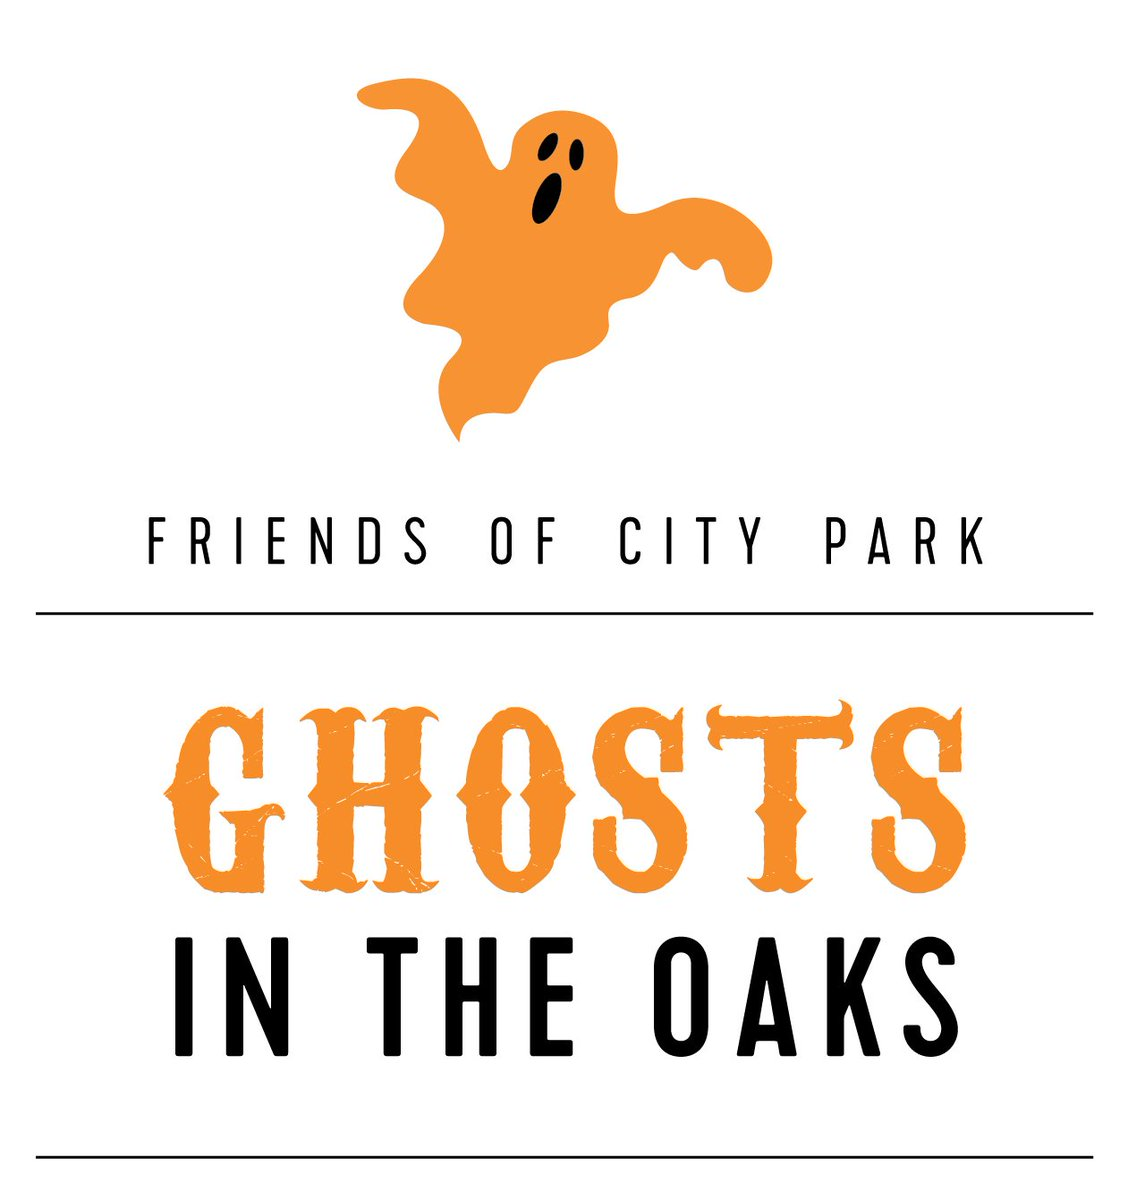 Get all the latest information on Oscar J. Tolmas Charitable Trust Presents Ghosts in the Oaks: A Haunting at Home! NEW BLOG POST WITH DETAILS: